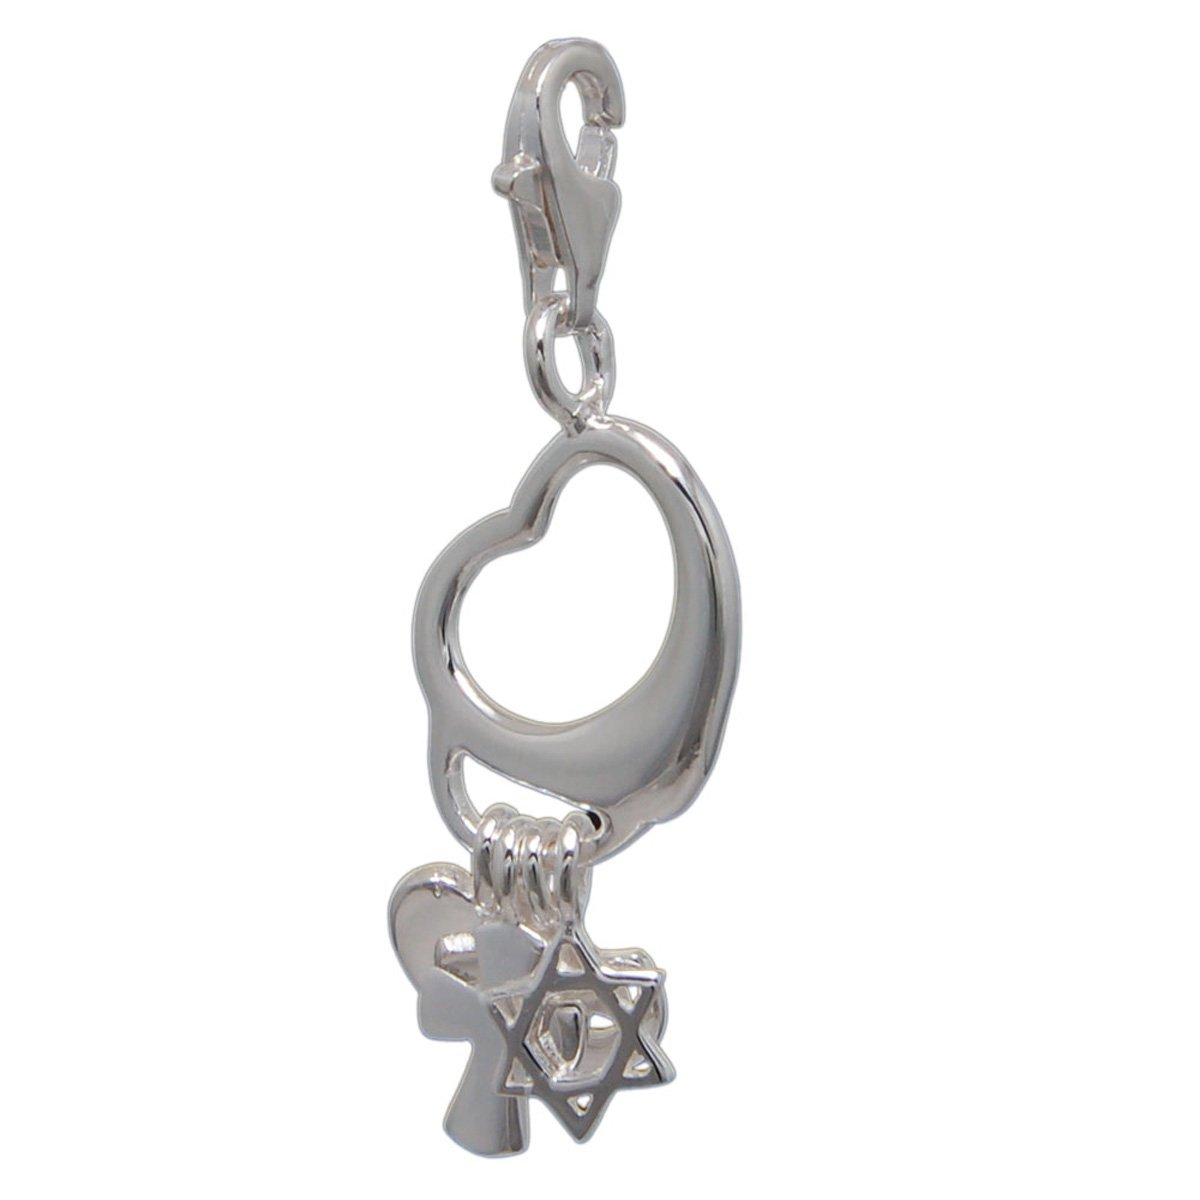 MELINA Charms Pendentif coeur Argent 925